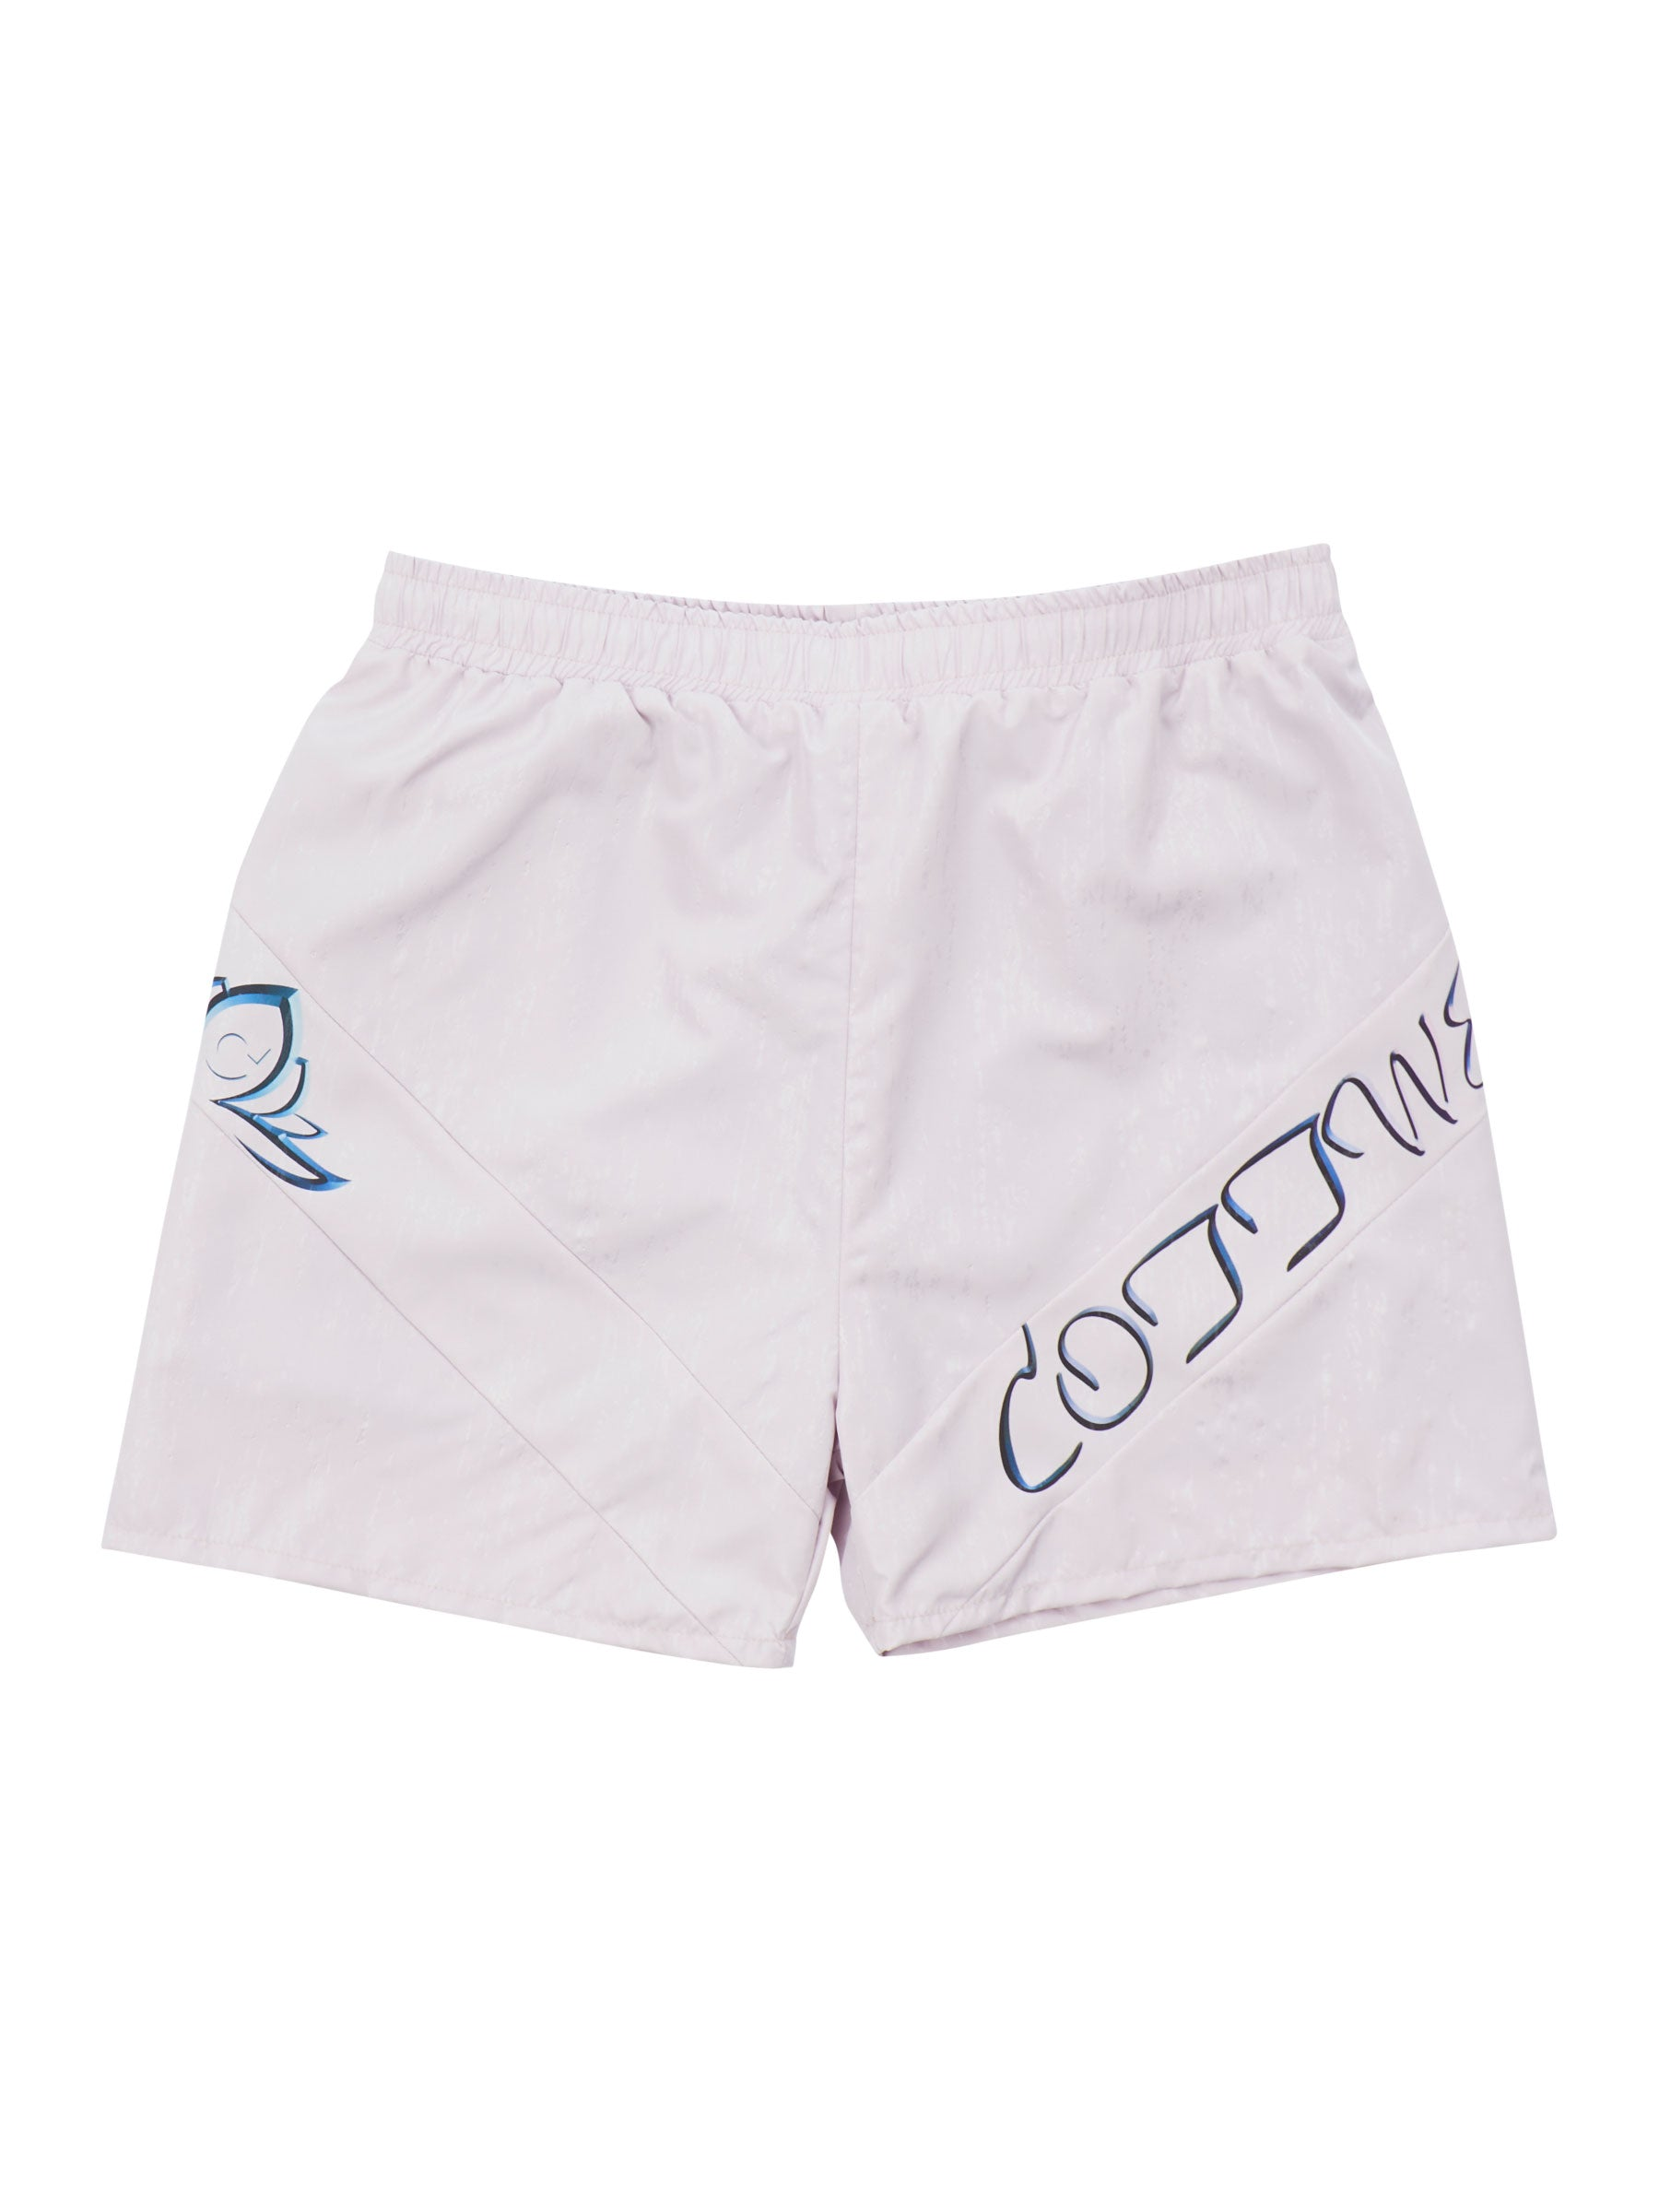 Lotus Swim Shorts